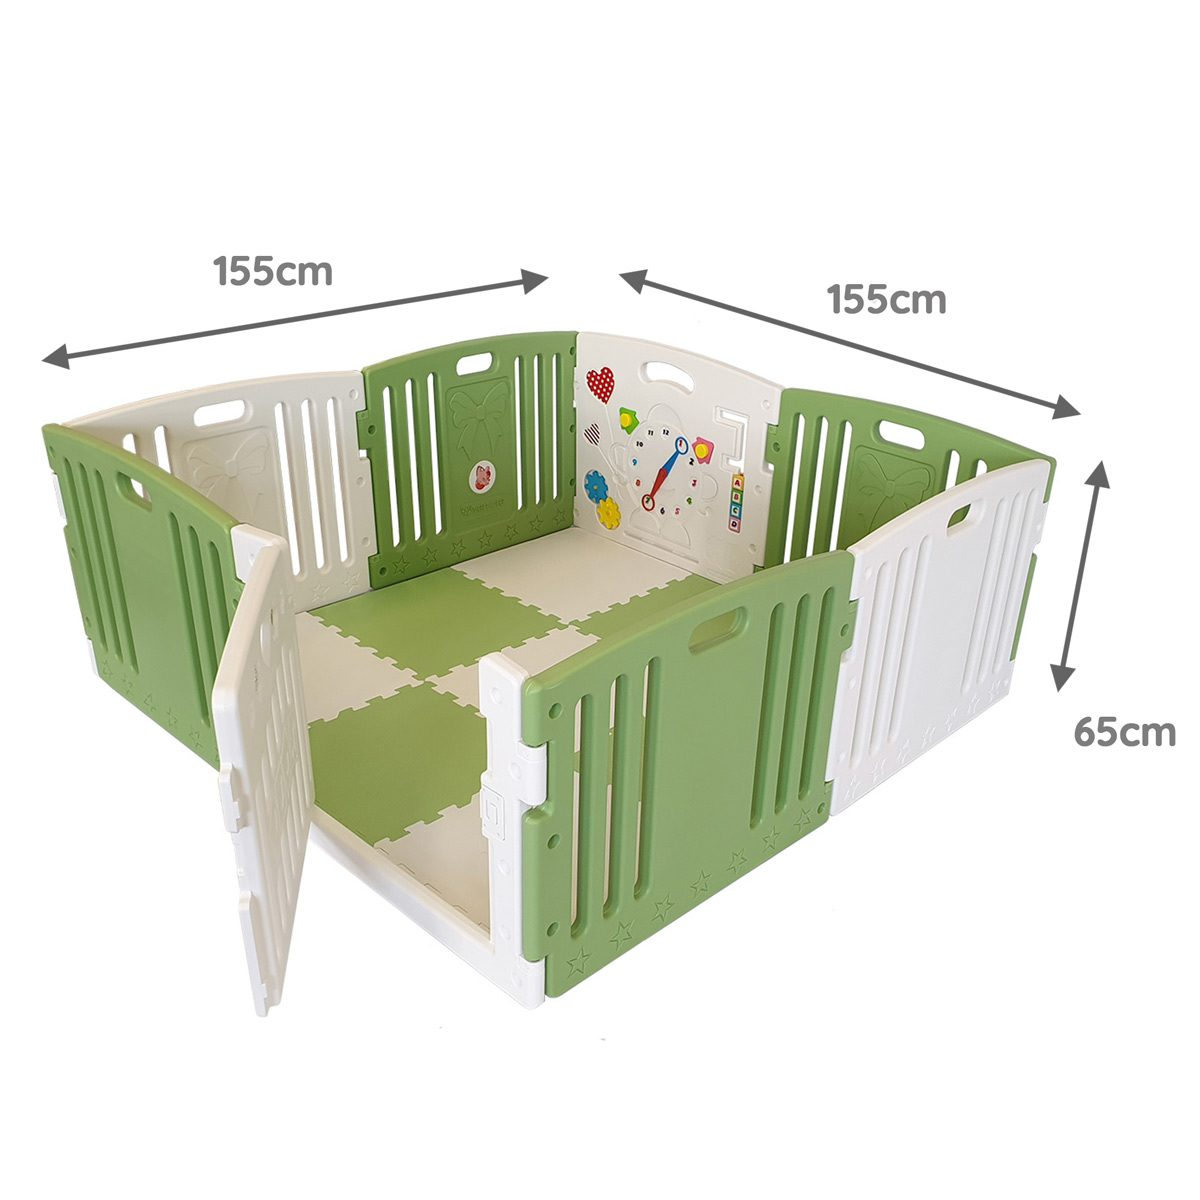 Green Venture All Stars DUO Baby Playpen Dimensions